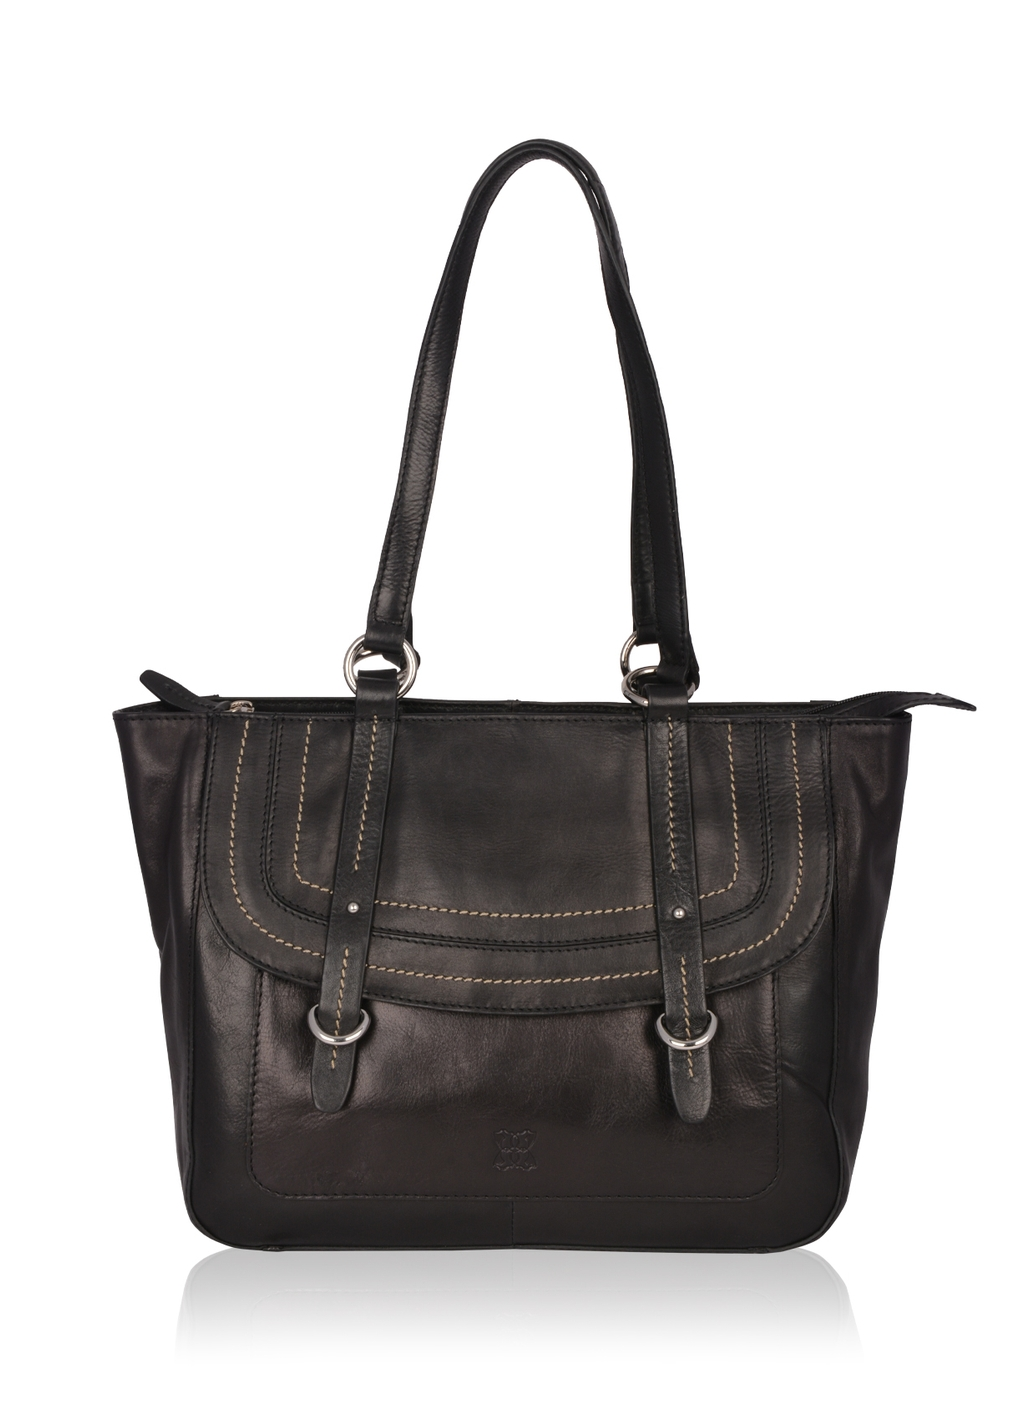 Buttermere Leather Shopper Bag in Black